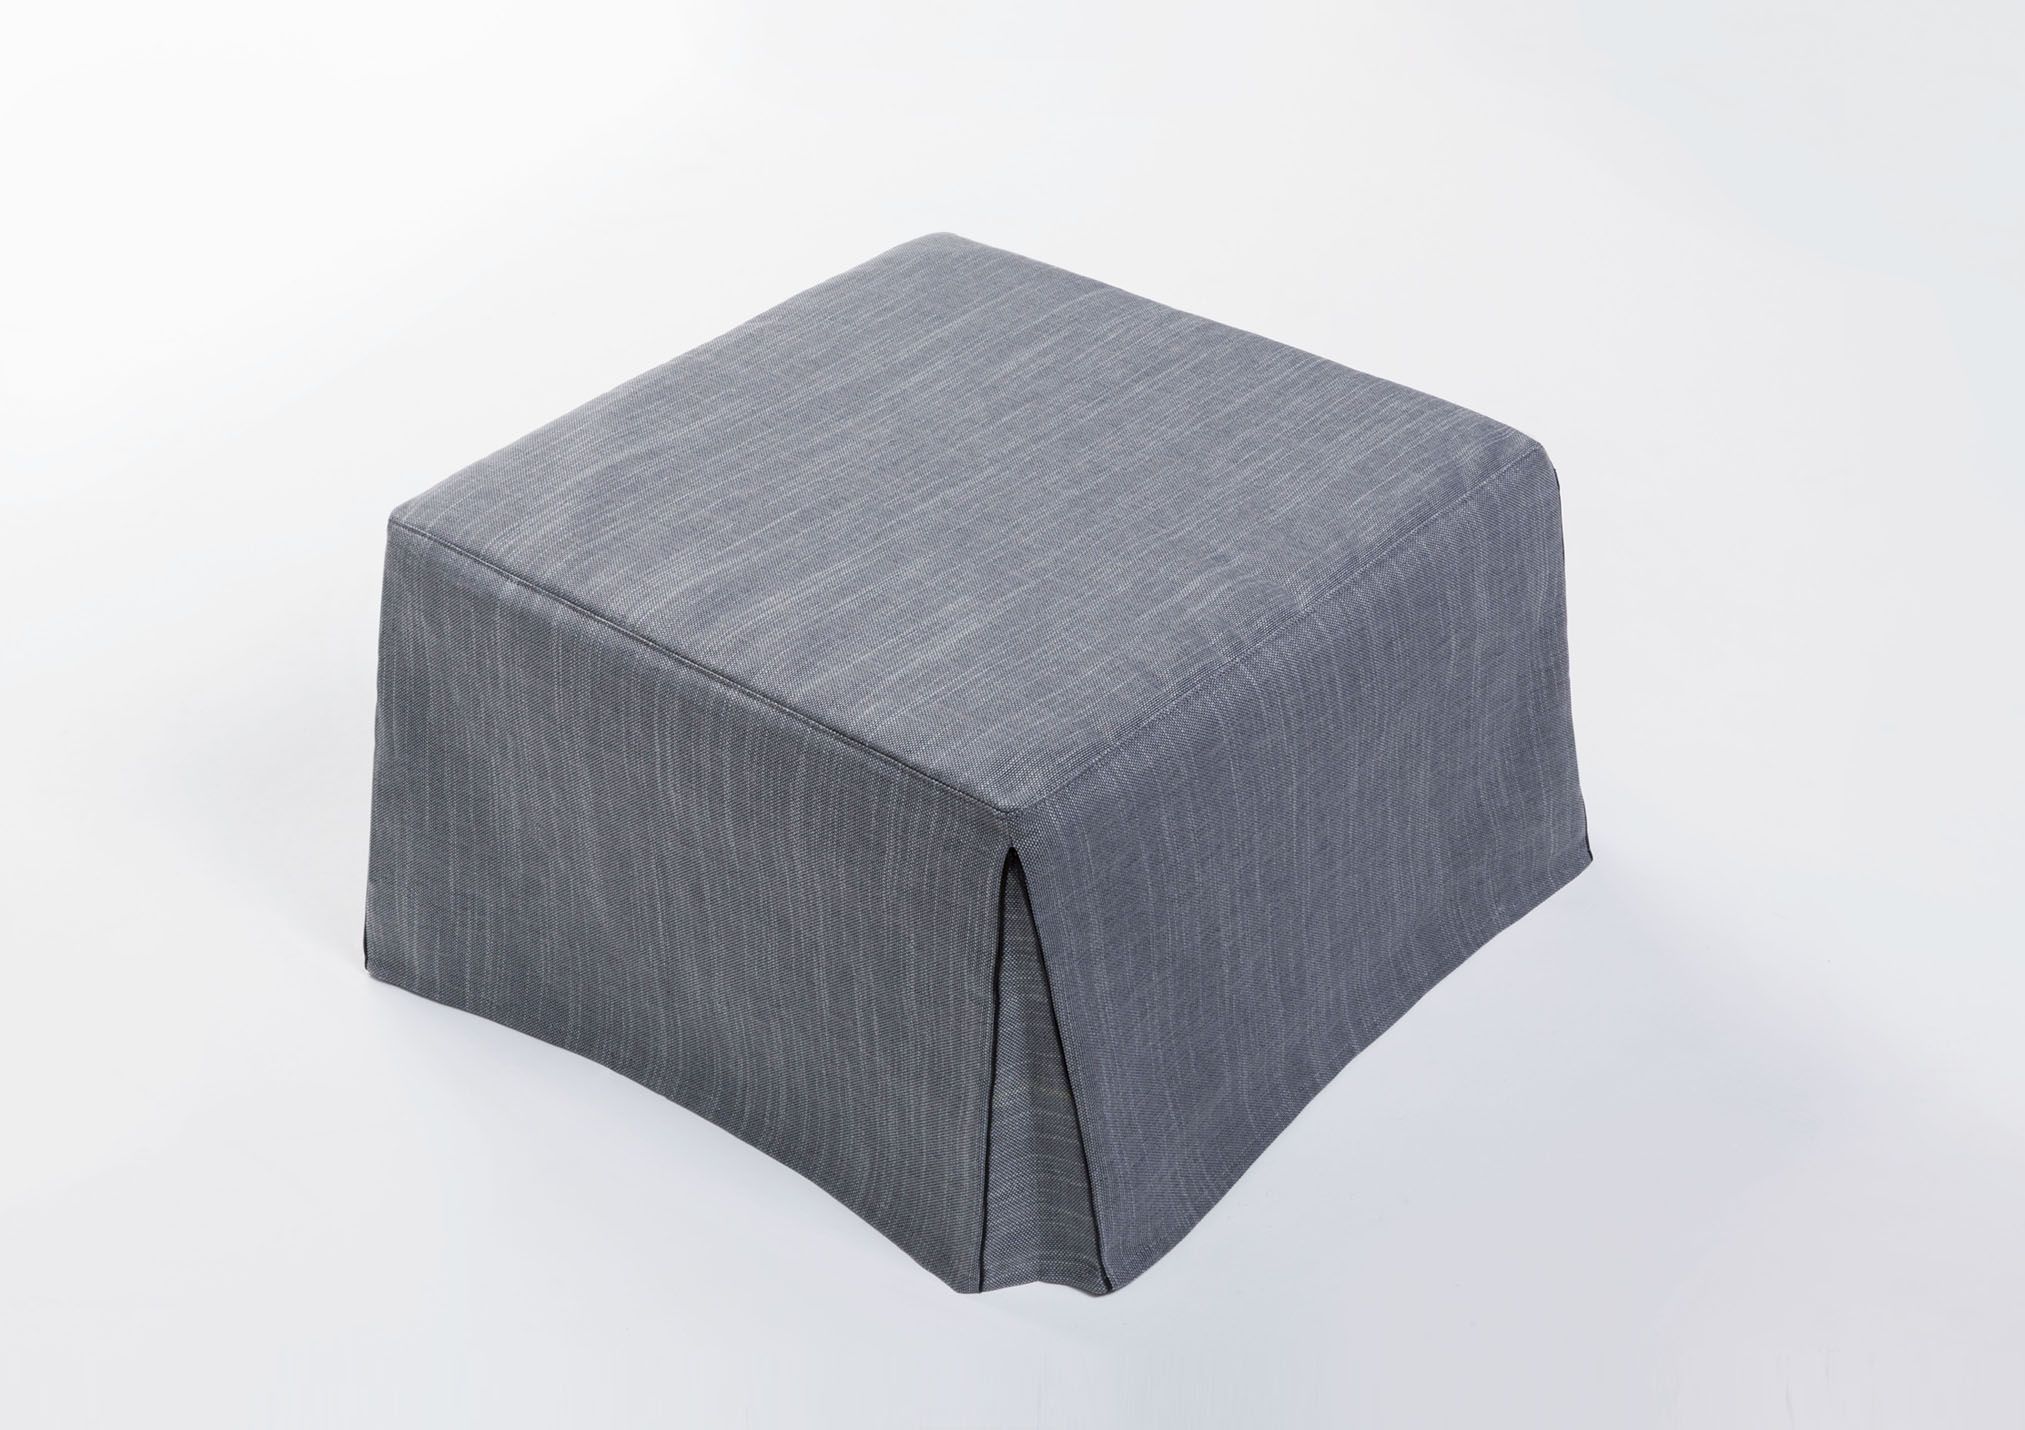 Pouf Convertible Convertible Pouf Bed Al Made By Berto Cm L 75 X P 75 X H 45